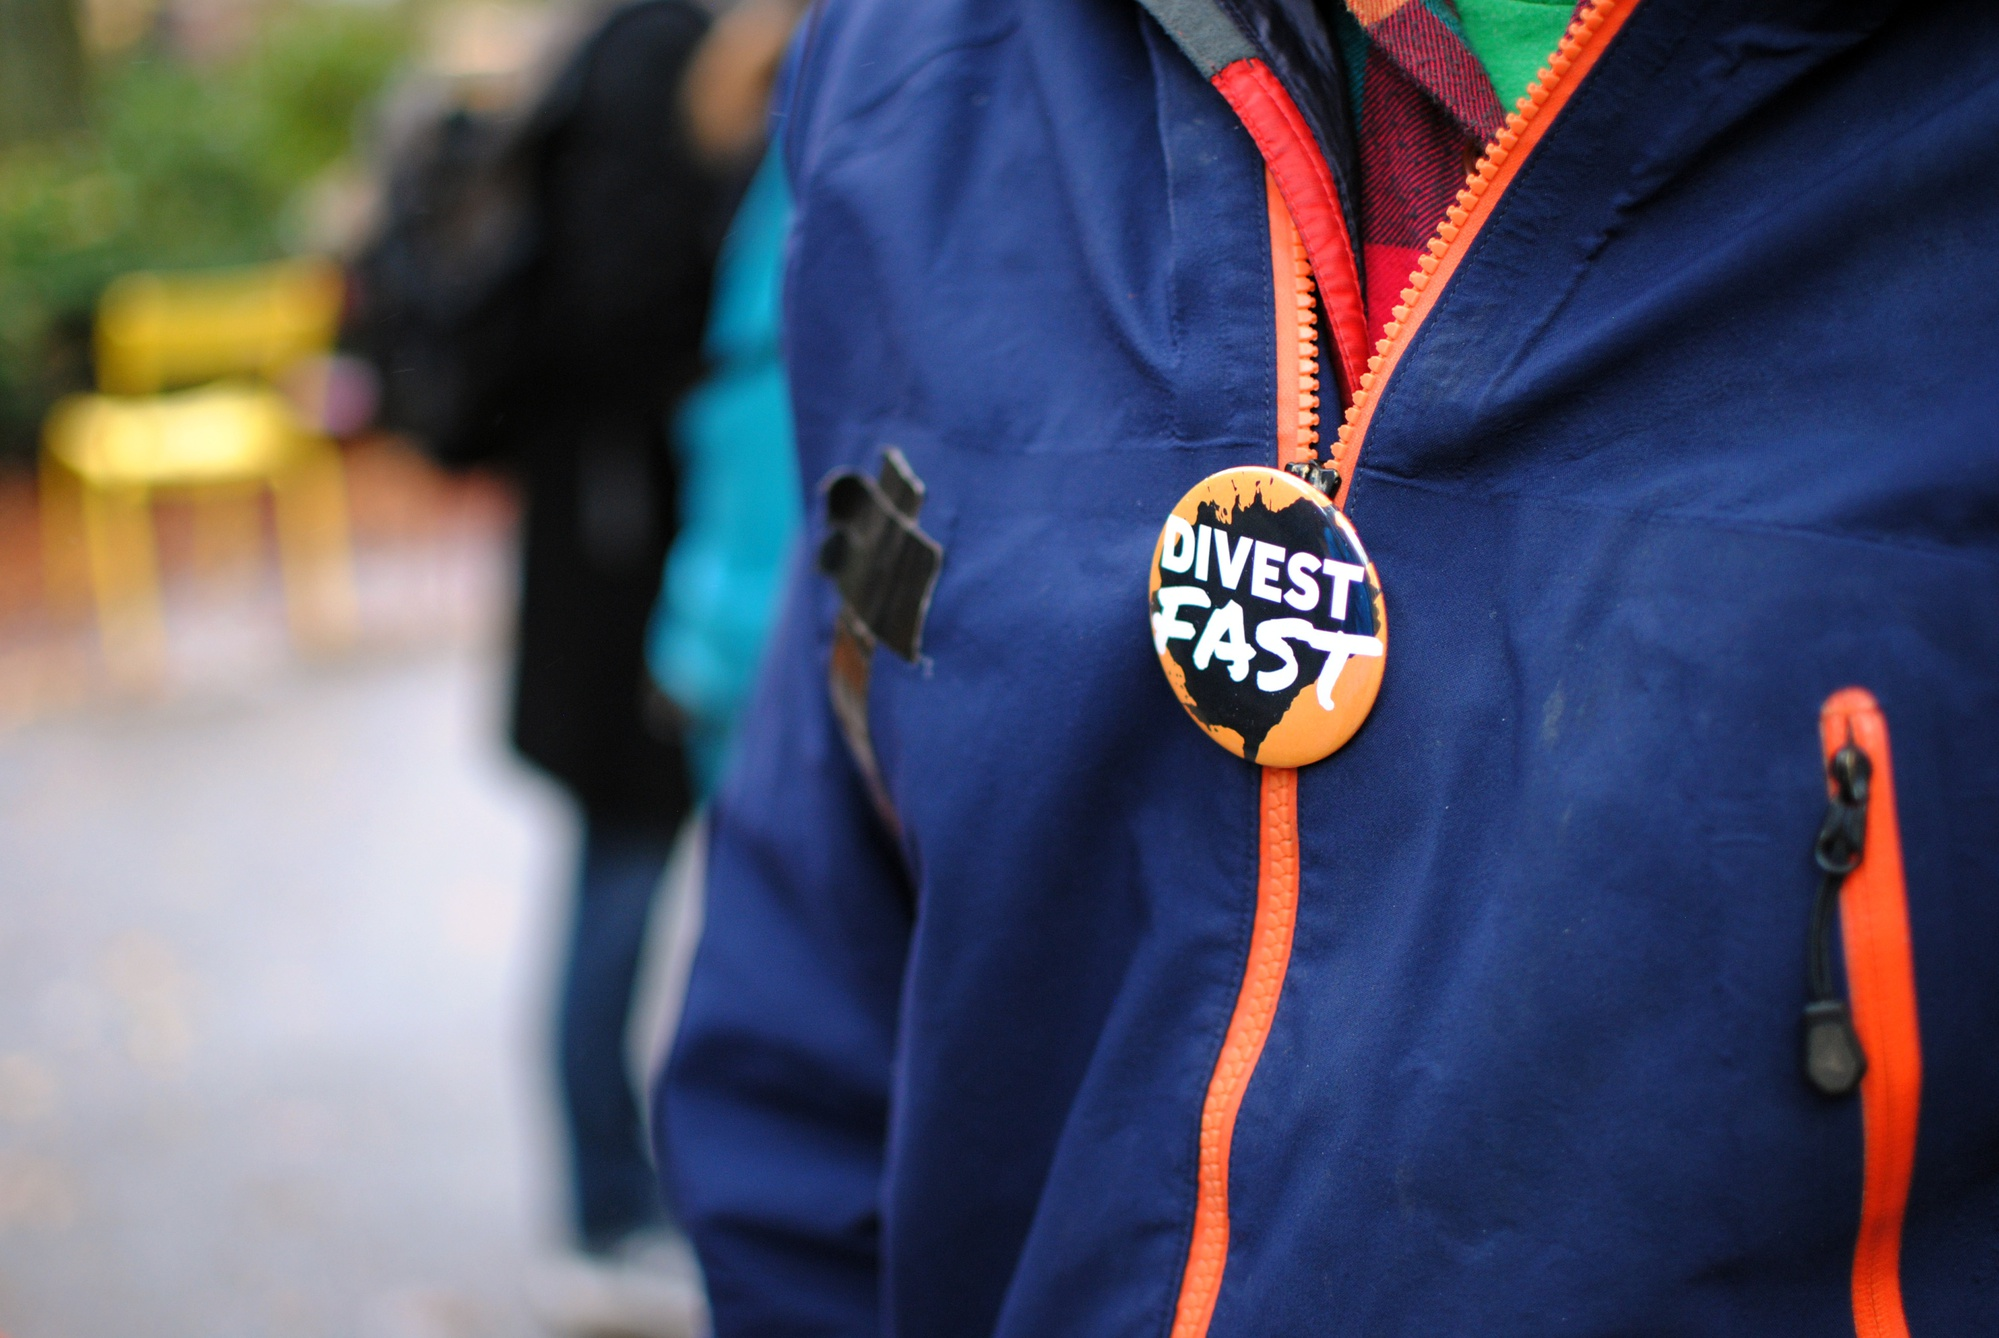 Henney Sullivan '15 dons a 'Divest Fast' pin at the Divest Harvard tent outside Massachusetts Hall in Harvard Yard on Wednesday. Sullivan is one of many students participating in the fast for fossil fuel divestment; he has not eaten since Sunday.